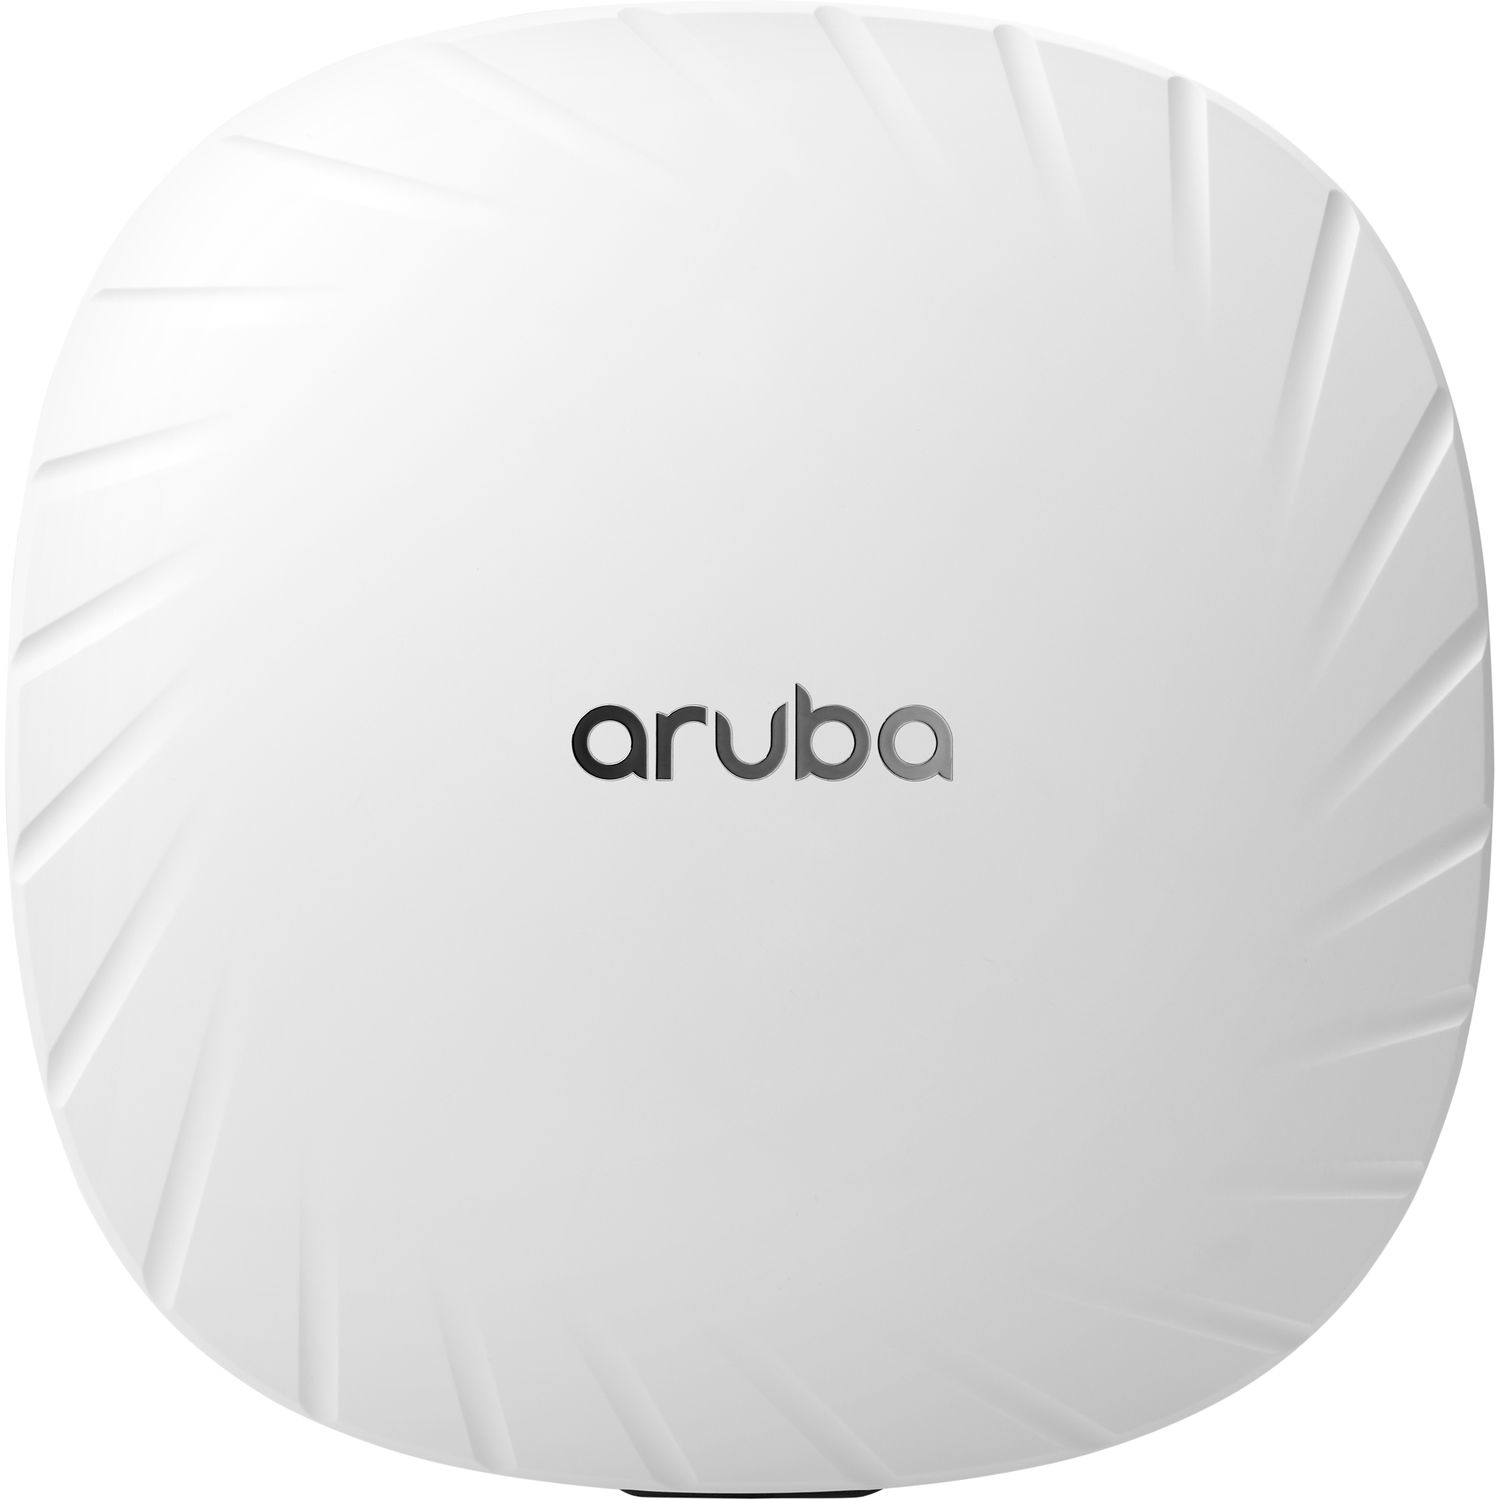 Hewlett Packard Enterprise Aruba AP-515 (RW) WLAN access point 5375 Mbit/s Power over Ethernet (PoE) White